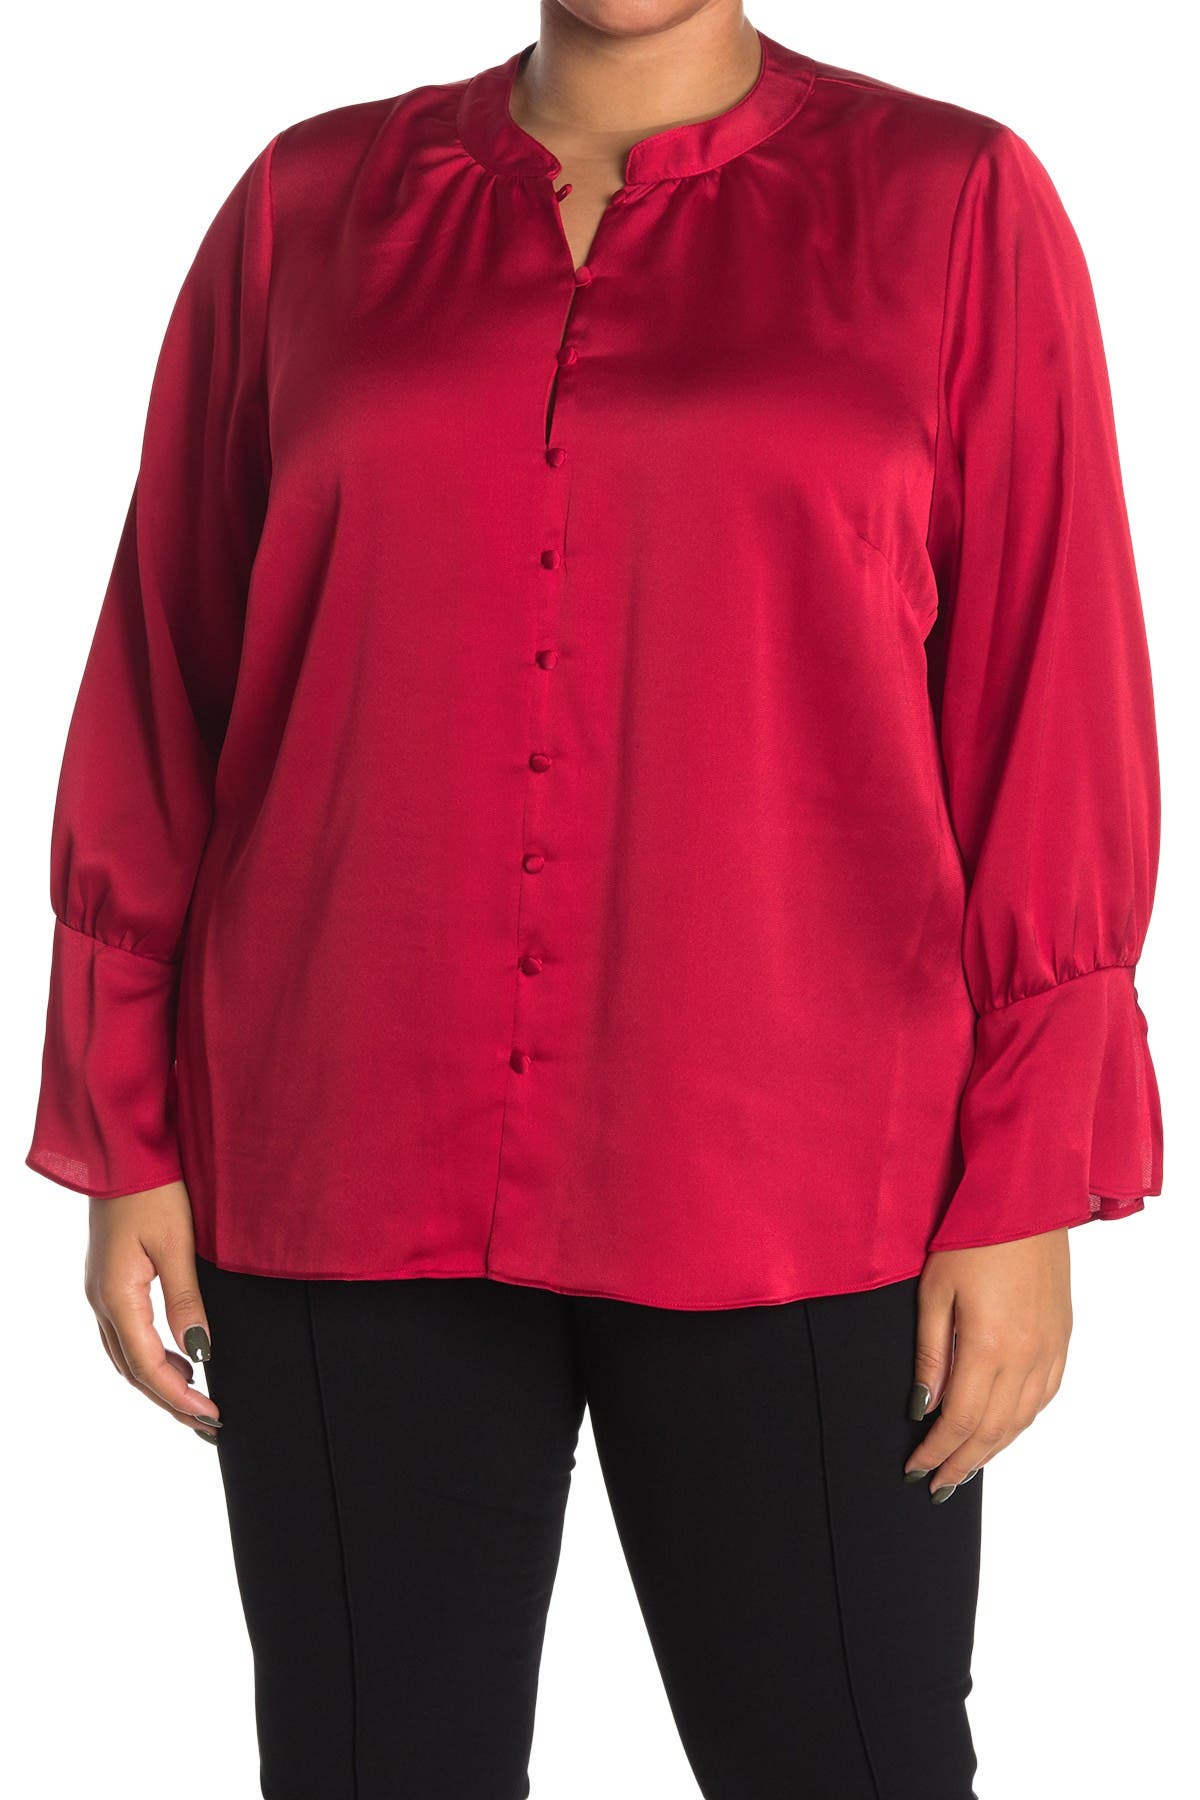 Image of Calvin Klein Solid Long Sleeve Satin Blouse